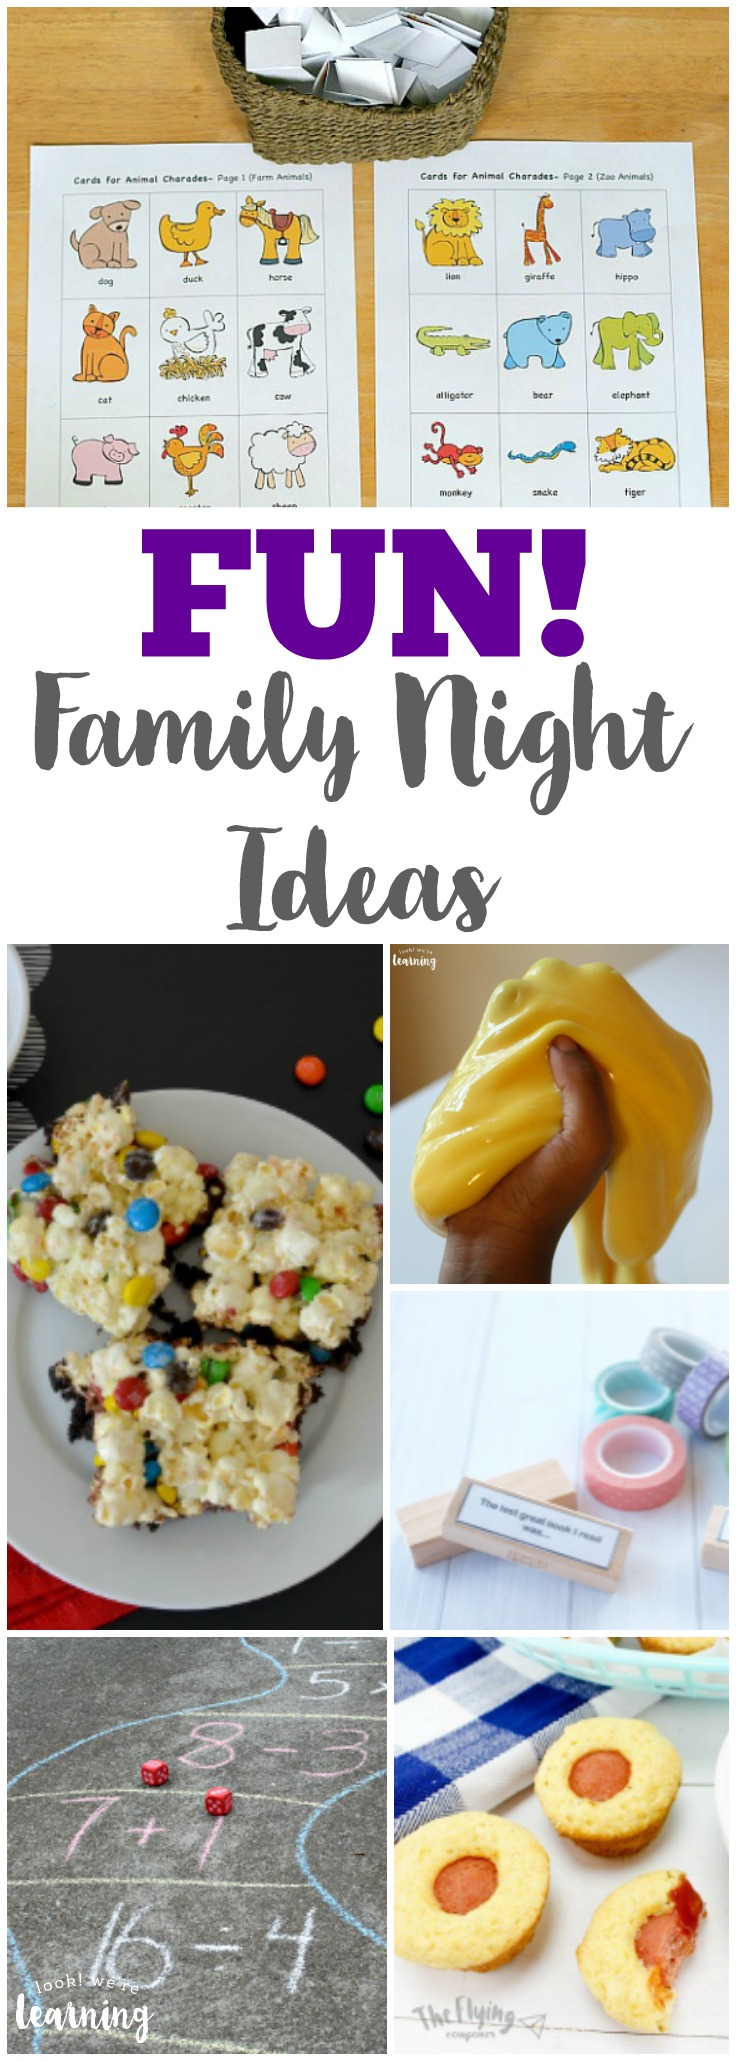 Plan an awesome evening in with these fun family night ideas you can share together!